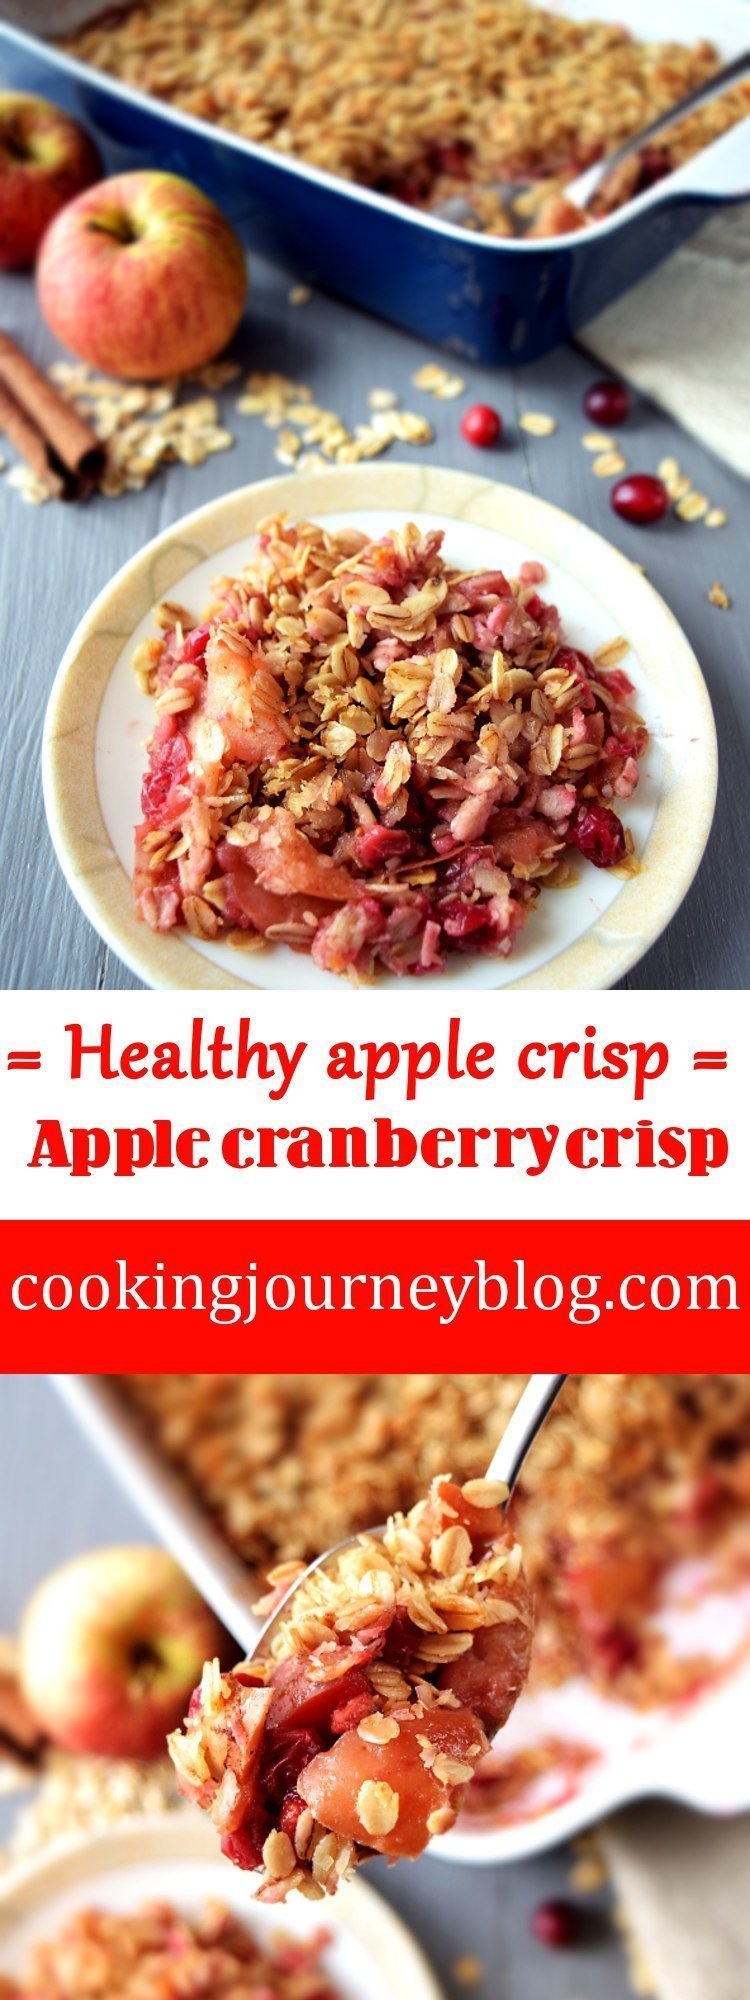 healthy apple crisp, apple cranberry crisp